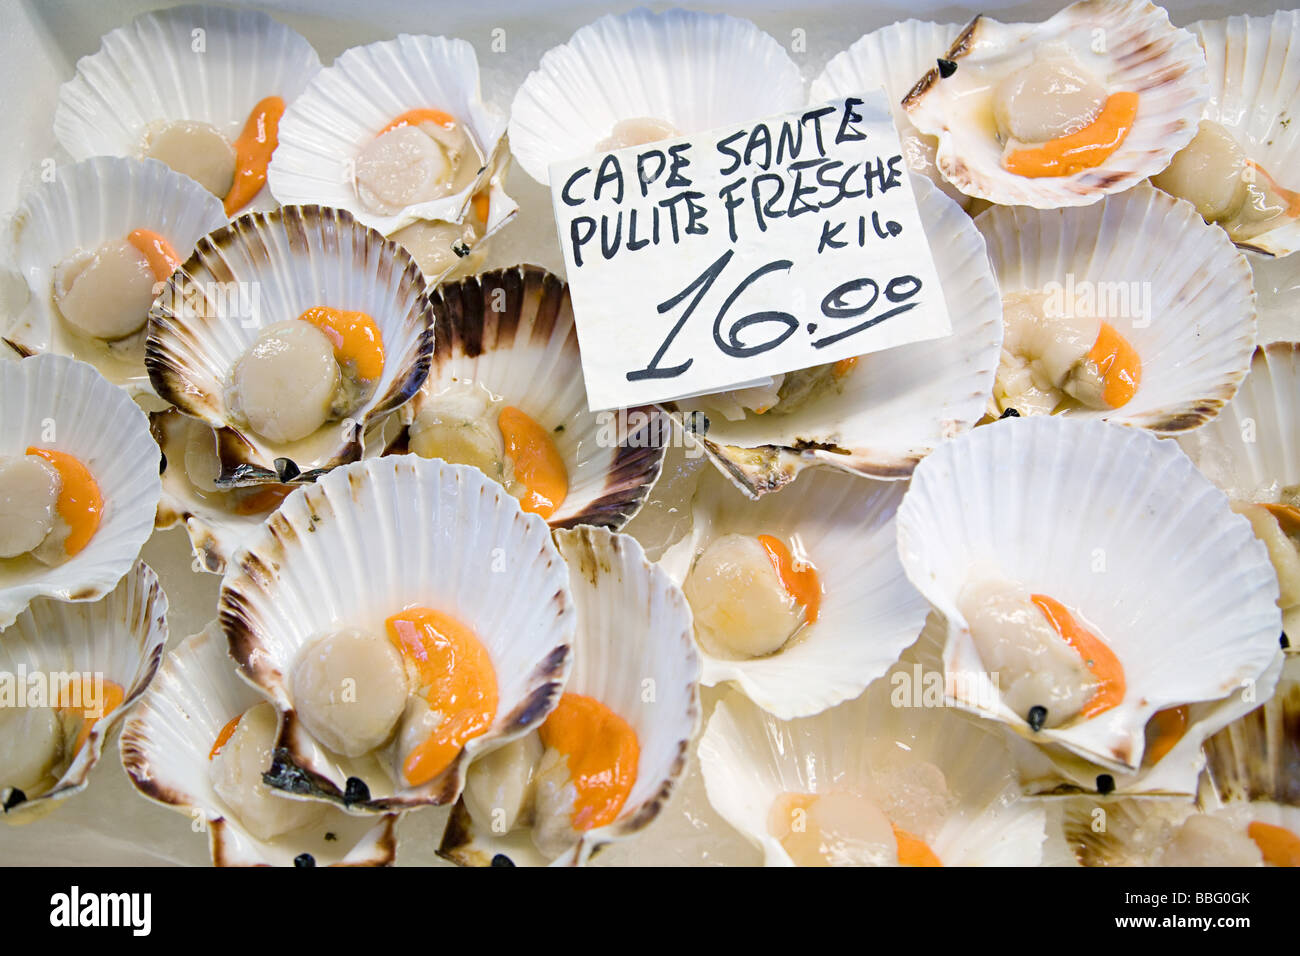 Scallops on a market stall - Stock Image